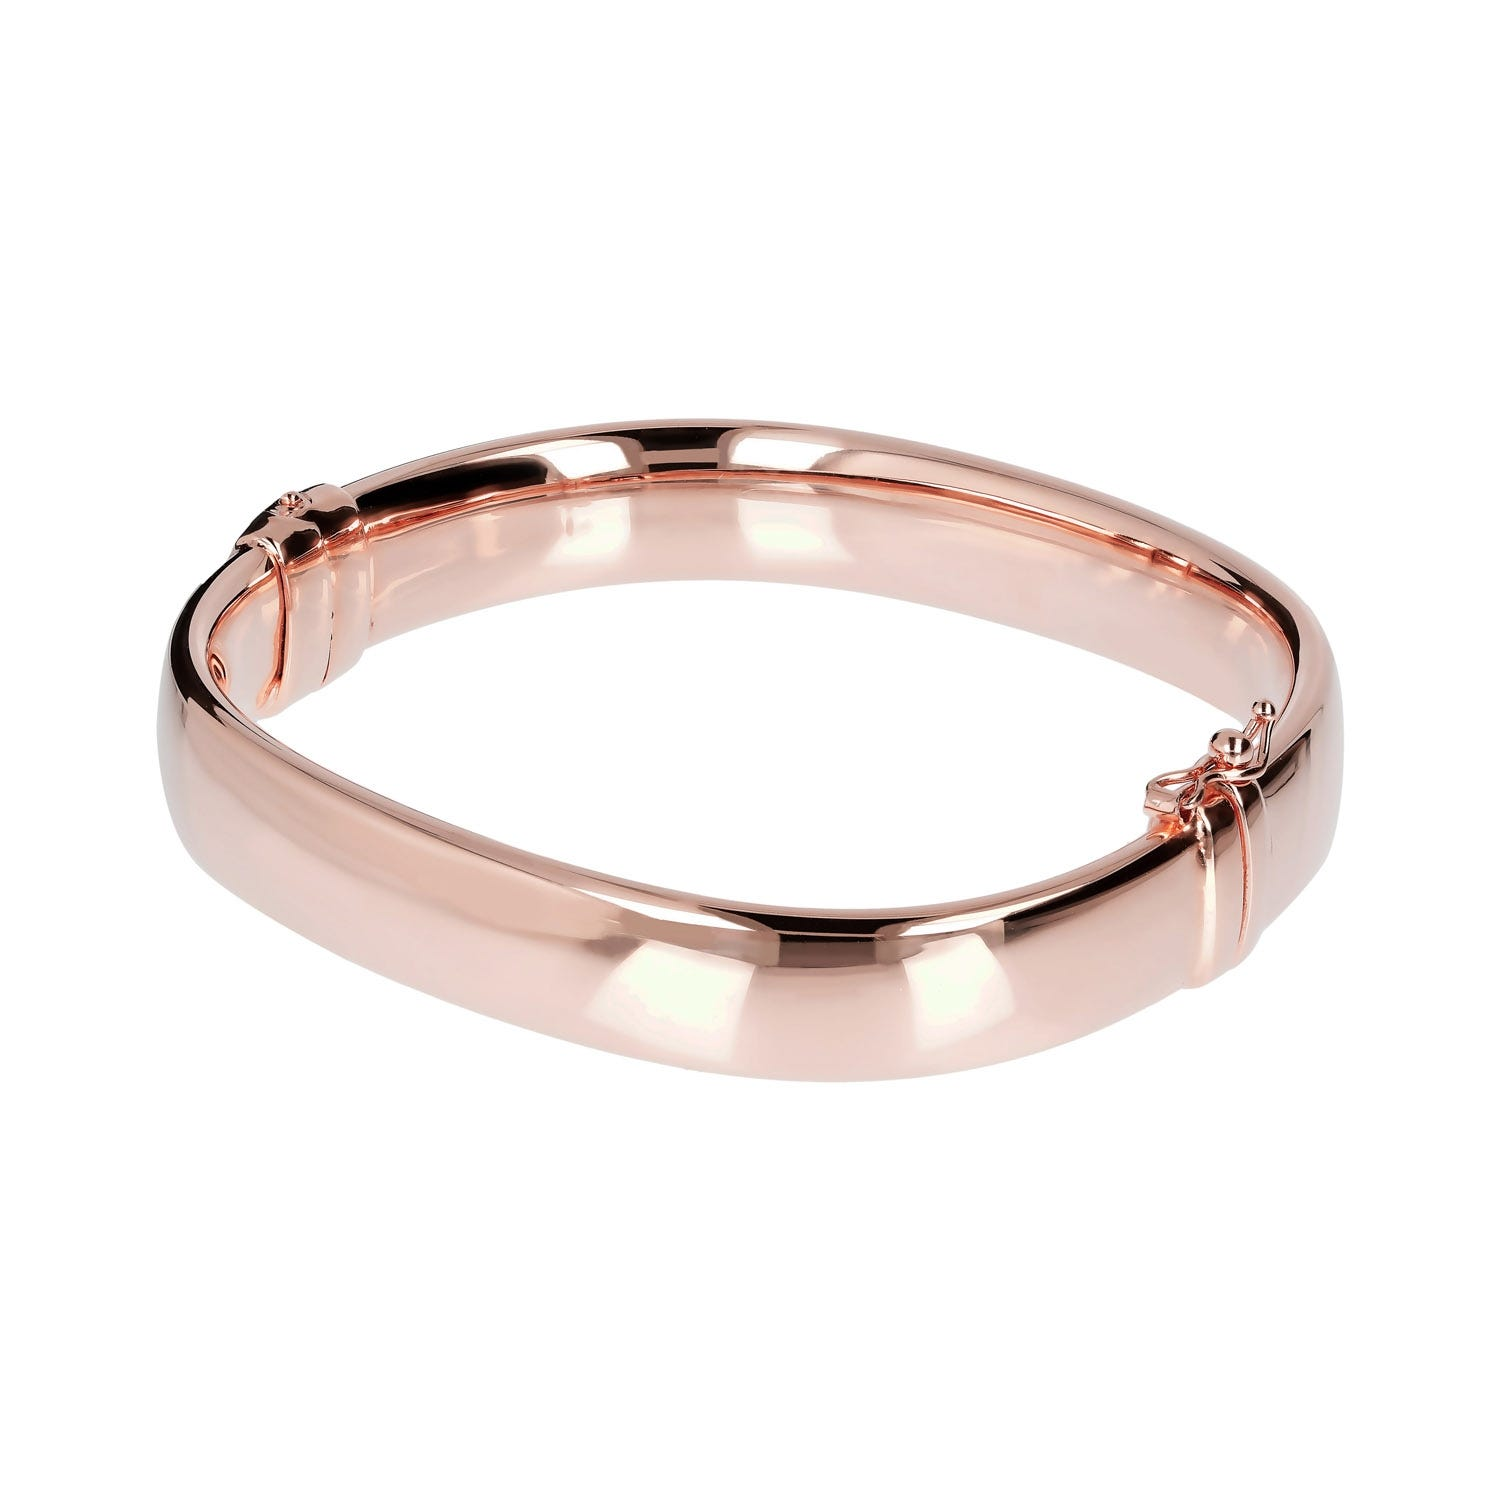 Bronzallure Nouveau 18ct Rose Gold-Plated Bangle